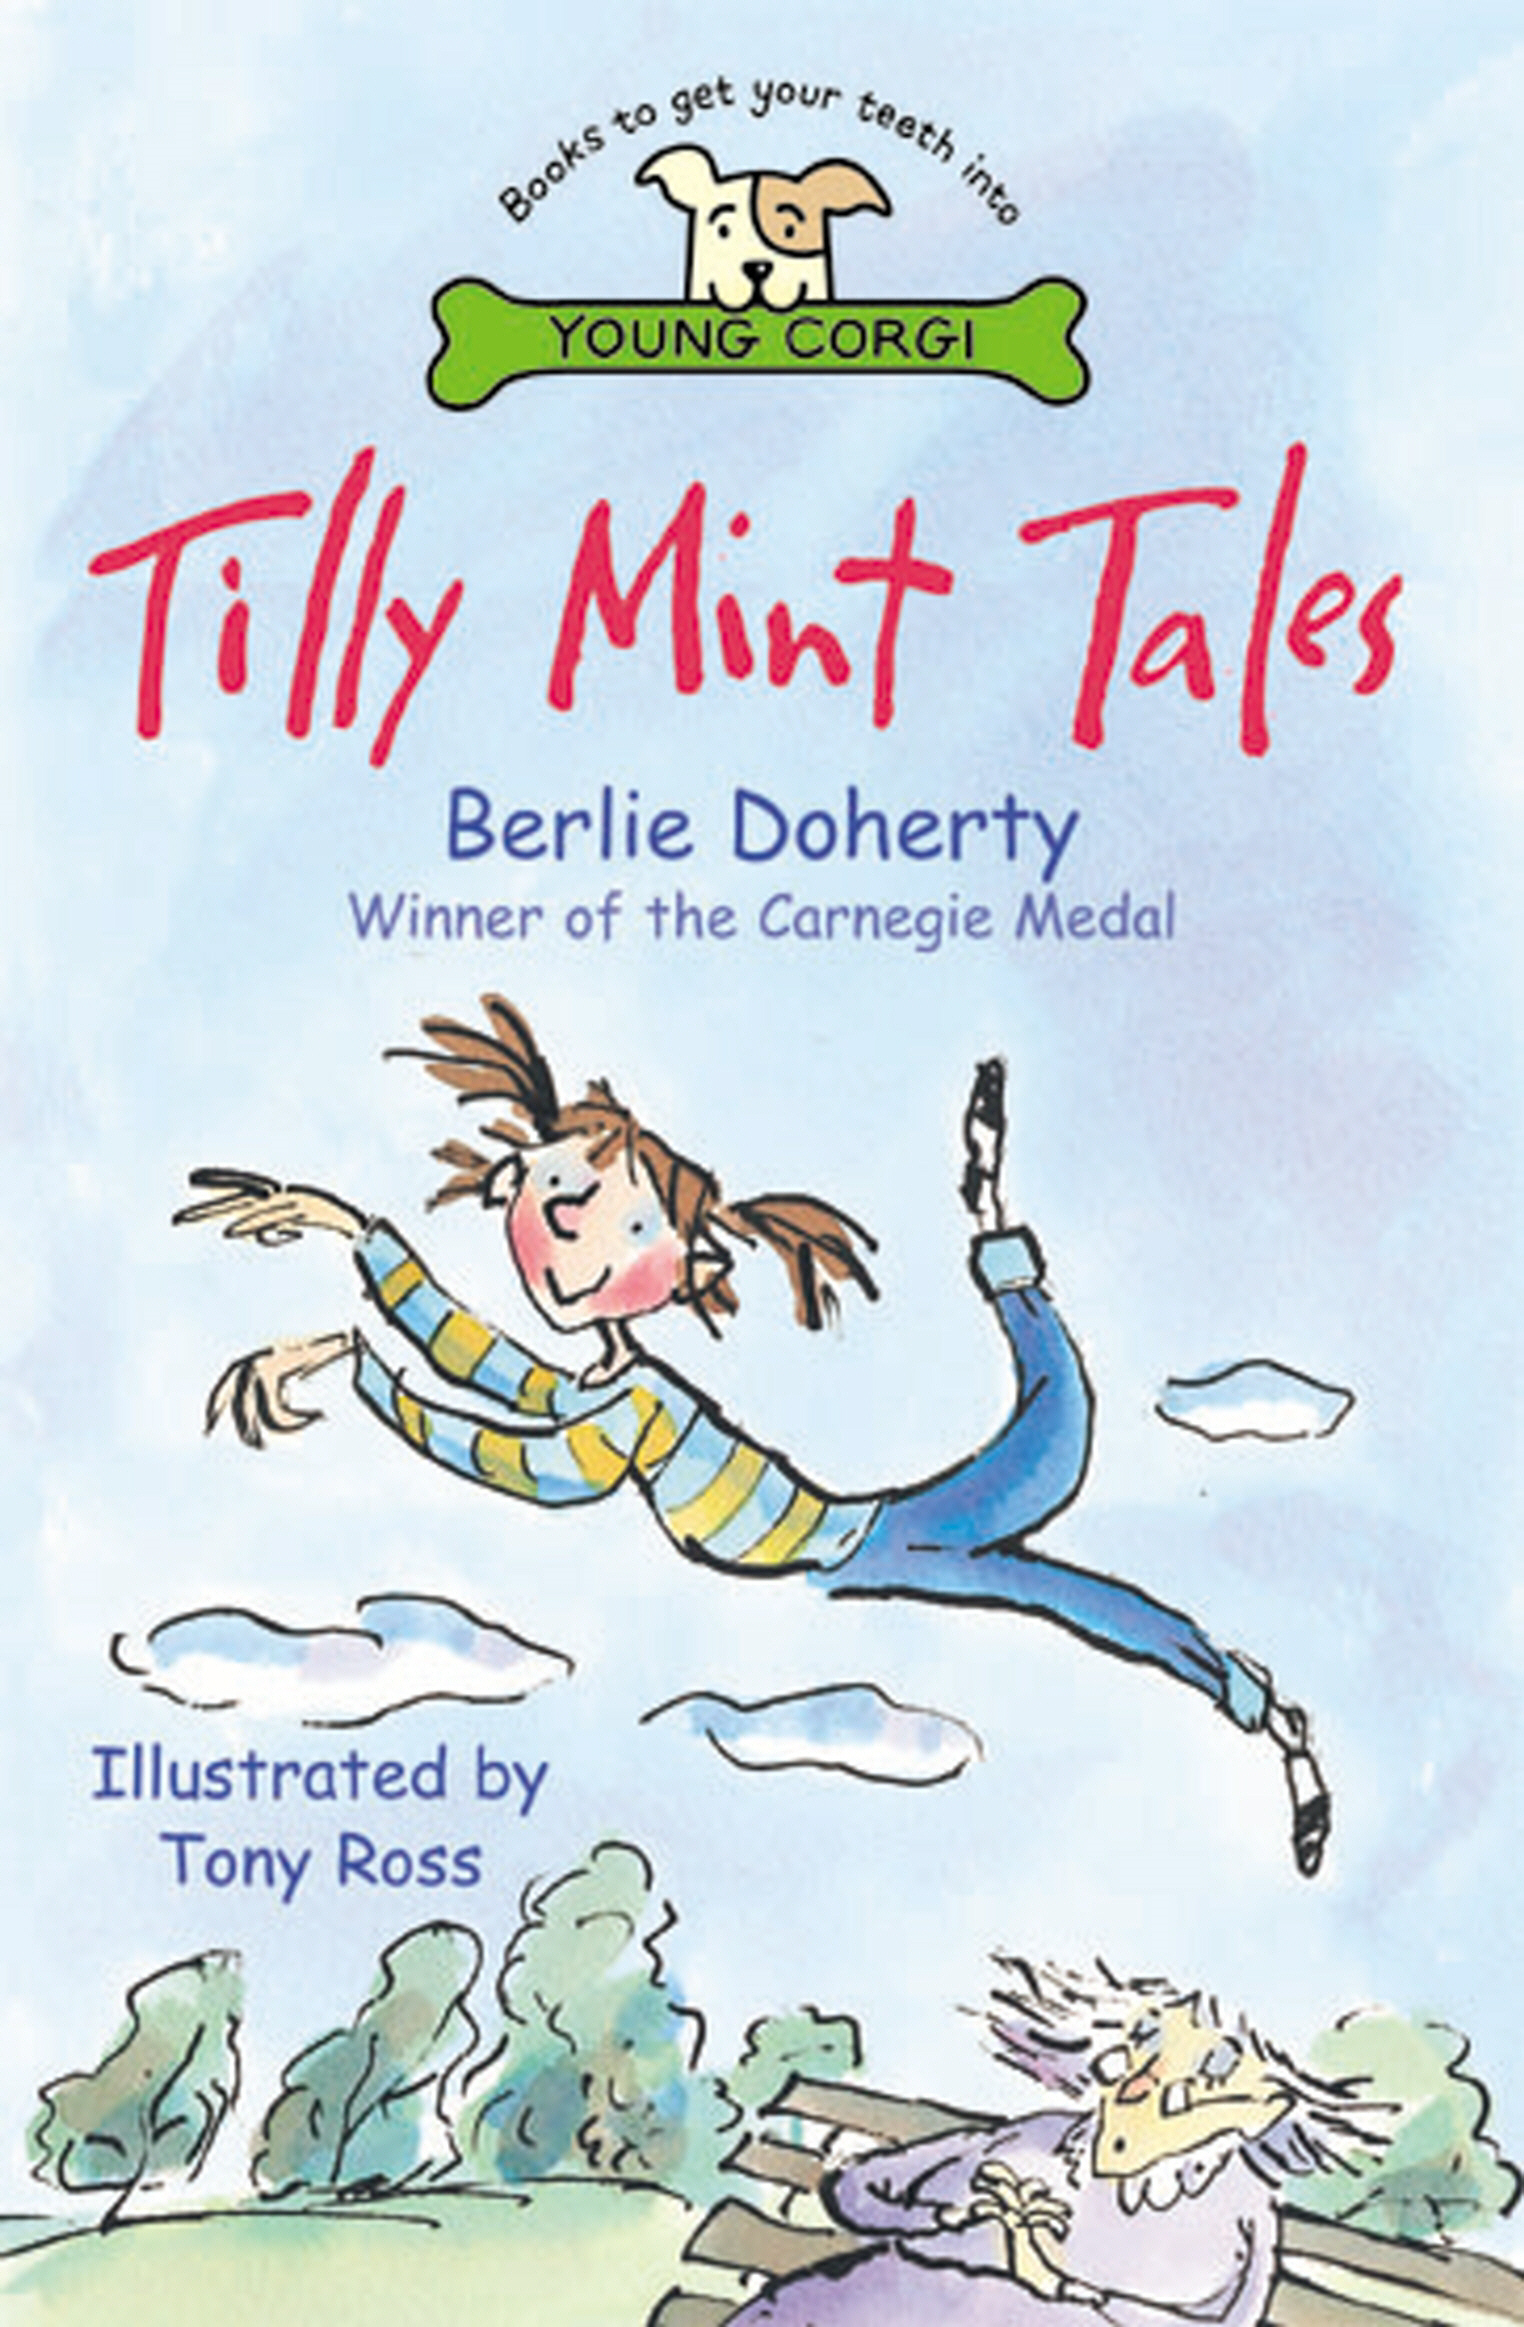 Tilly Mint Tales By: Berlie Doherty,Tony Ross